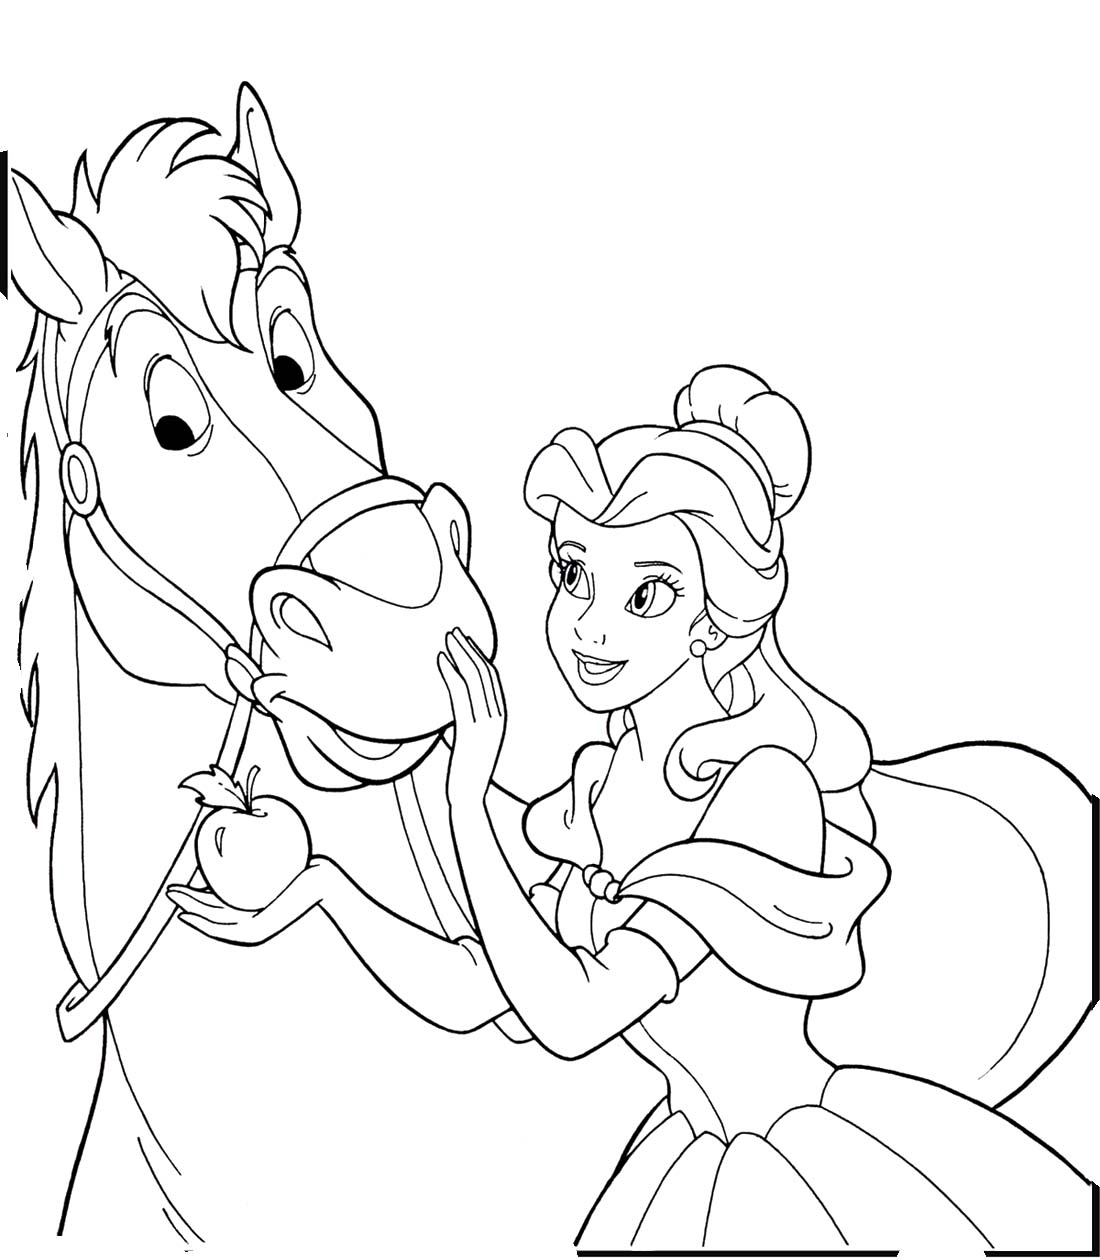 Disney Horse Coloring Pages At Getdrawings Com Free For Personal